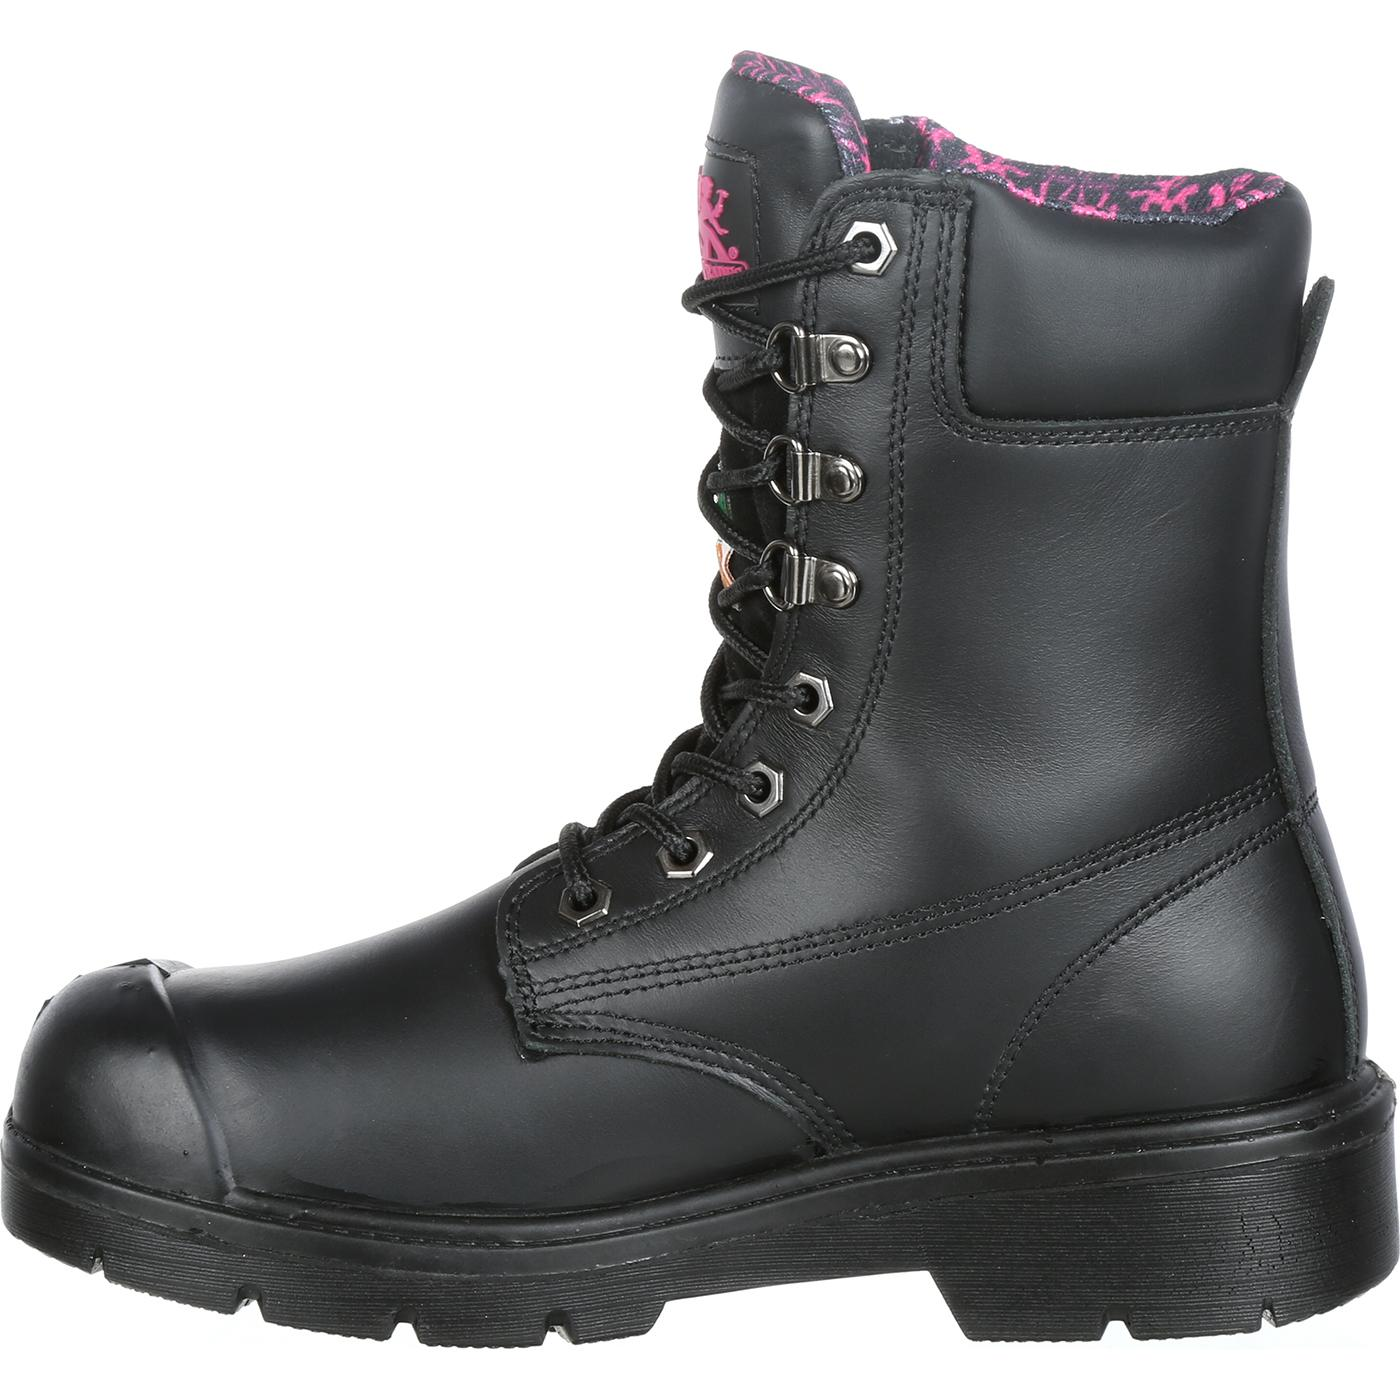 3a64821182d Moxie Trades Anne Women's Steel Toe CSA-Approved Puncture-Resistant  Waterproof Work Boot